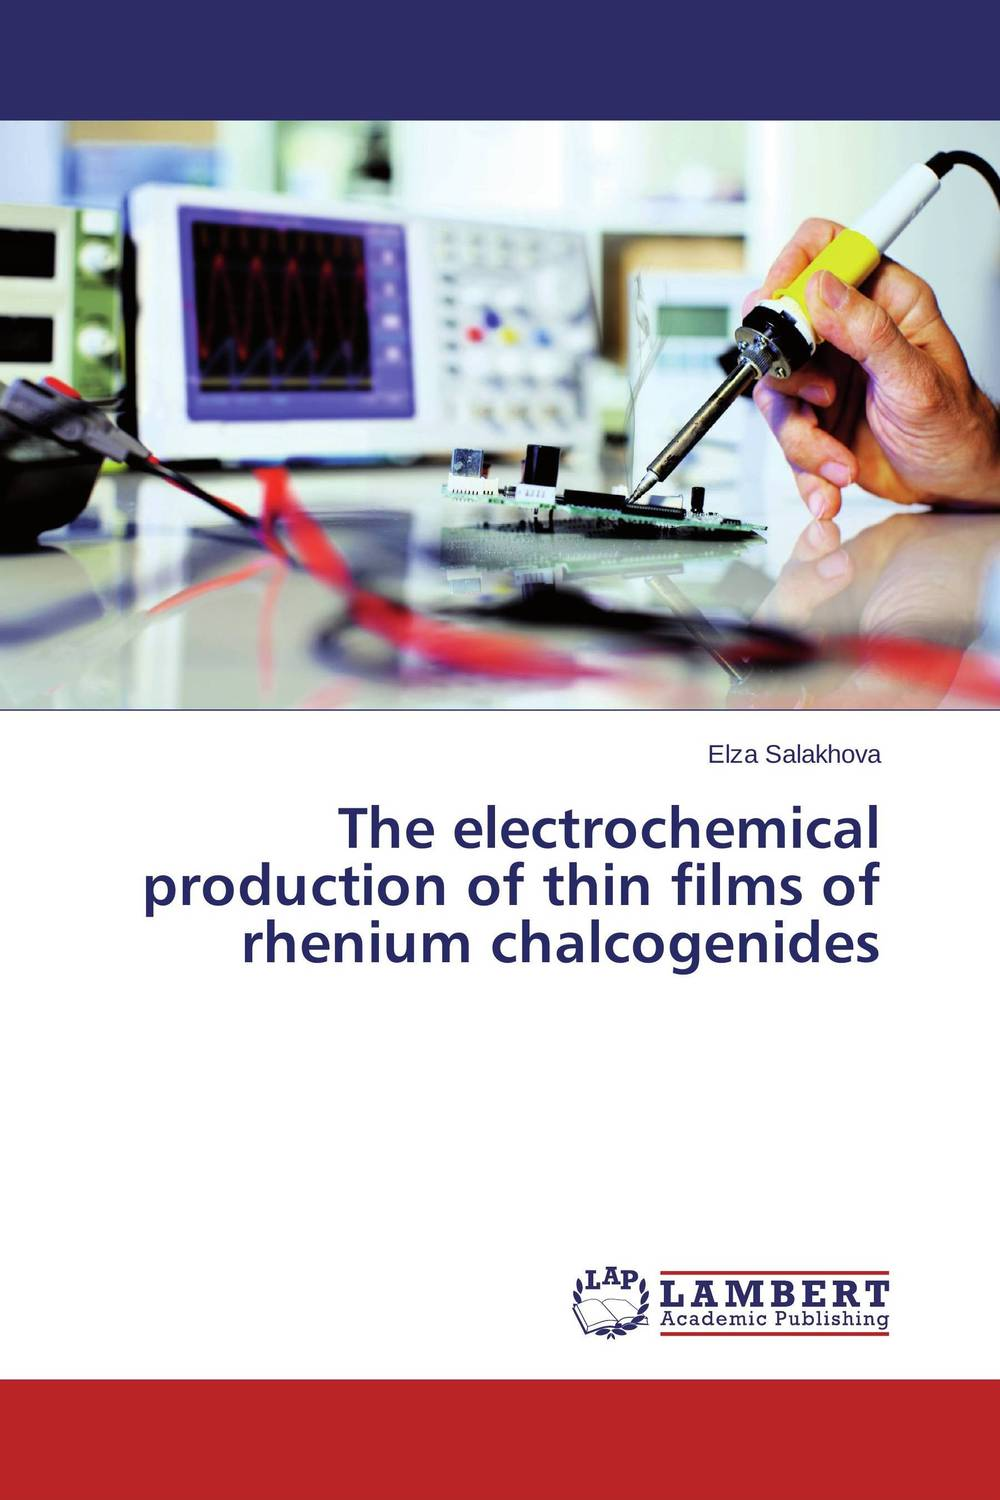 The electrochemical production of thin films of rhenium chalcogenides